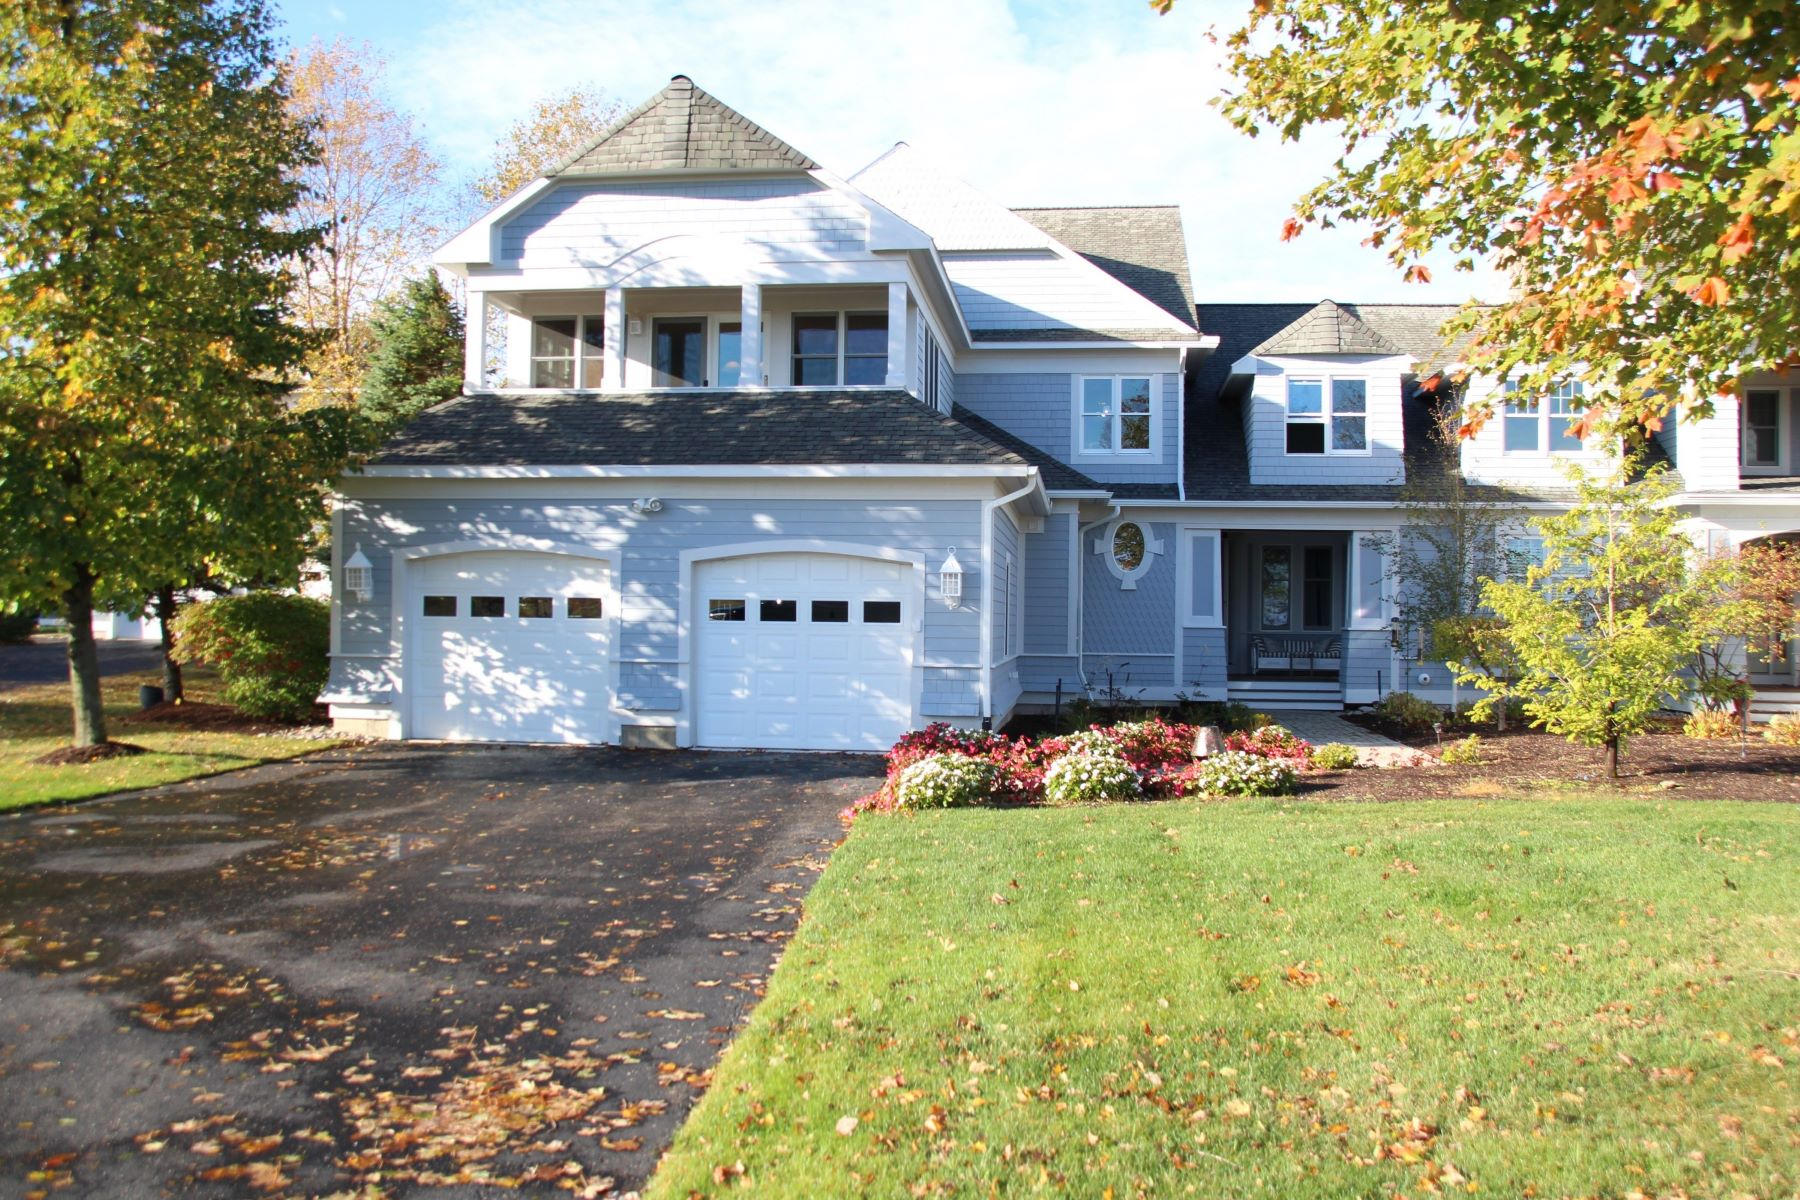 Single Family Home for Sale at Quarry View 6 6325 Quarry View Drive, Bay Harbor, Michigan, 49770 United States